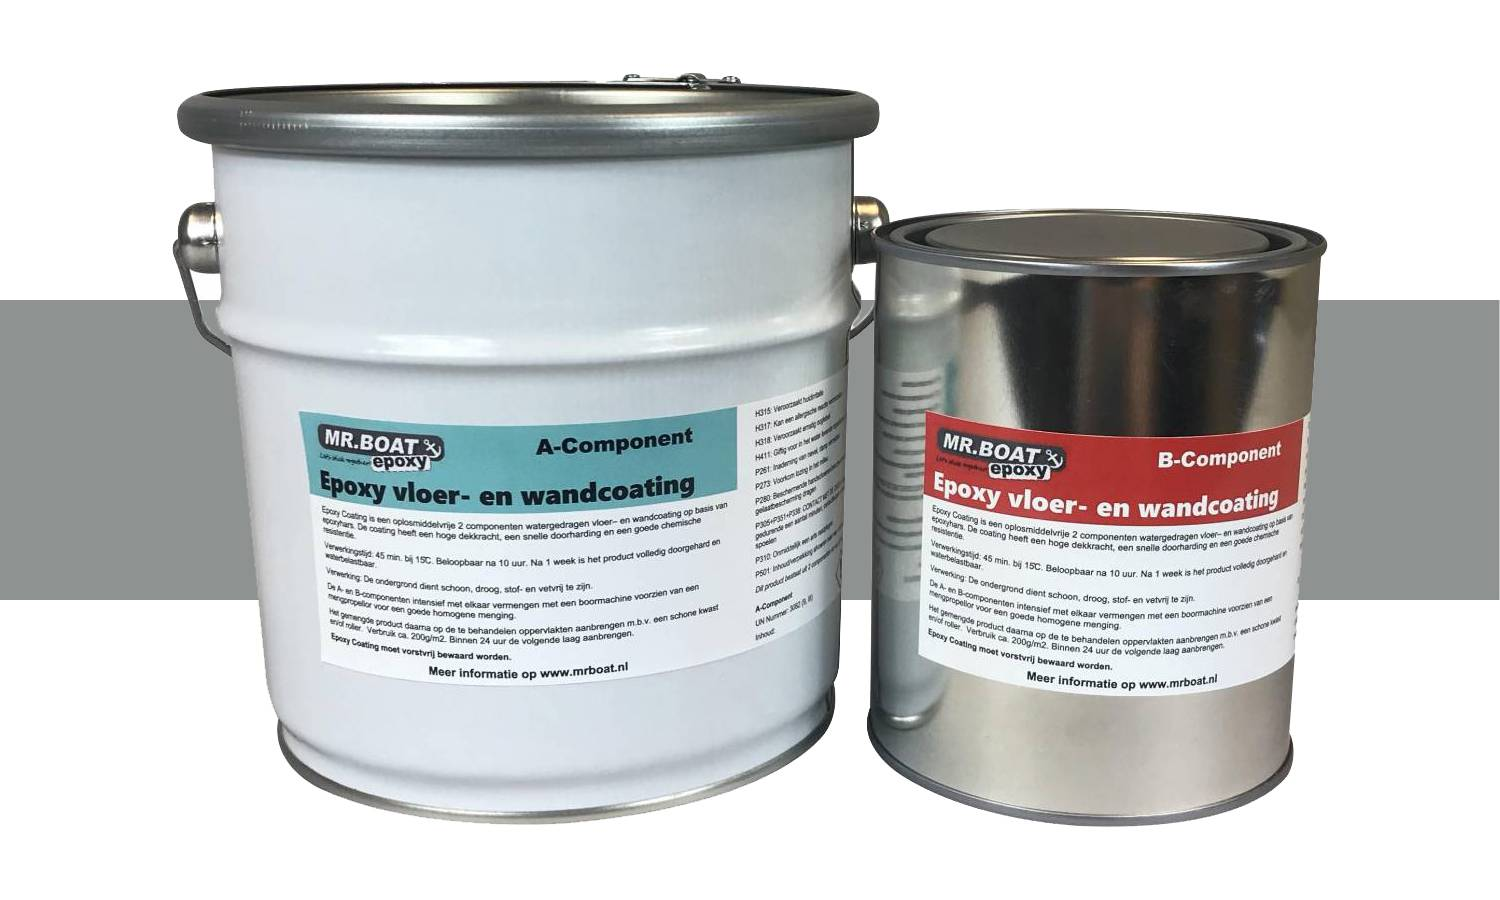 epoxy vloercoating ral-7042